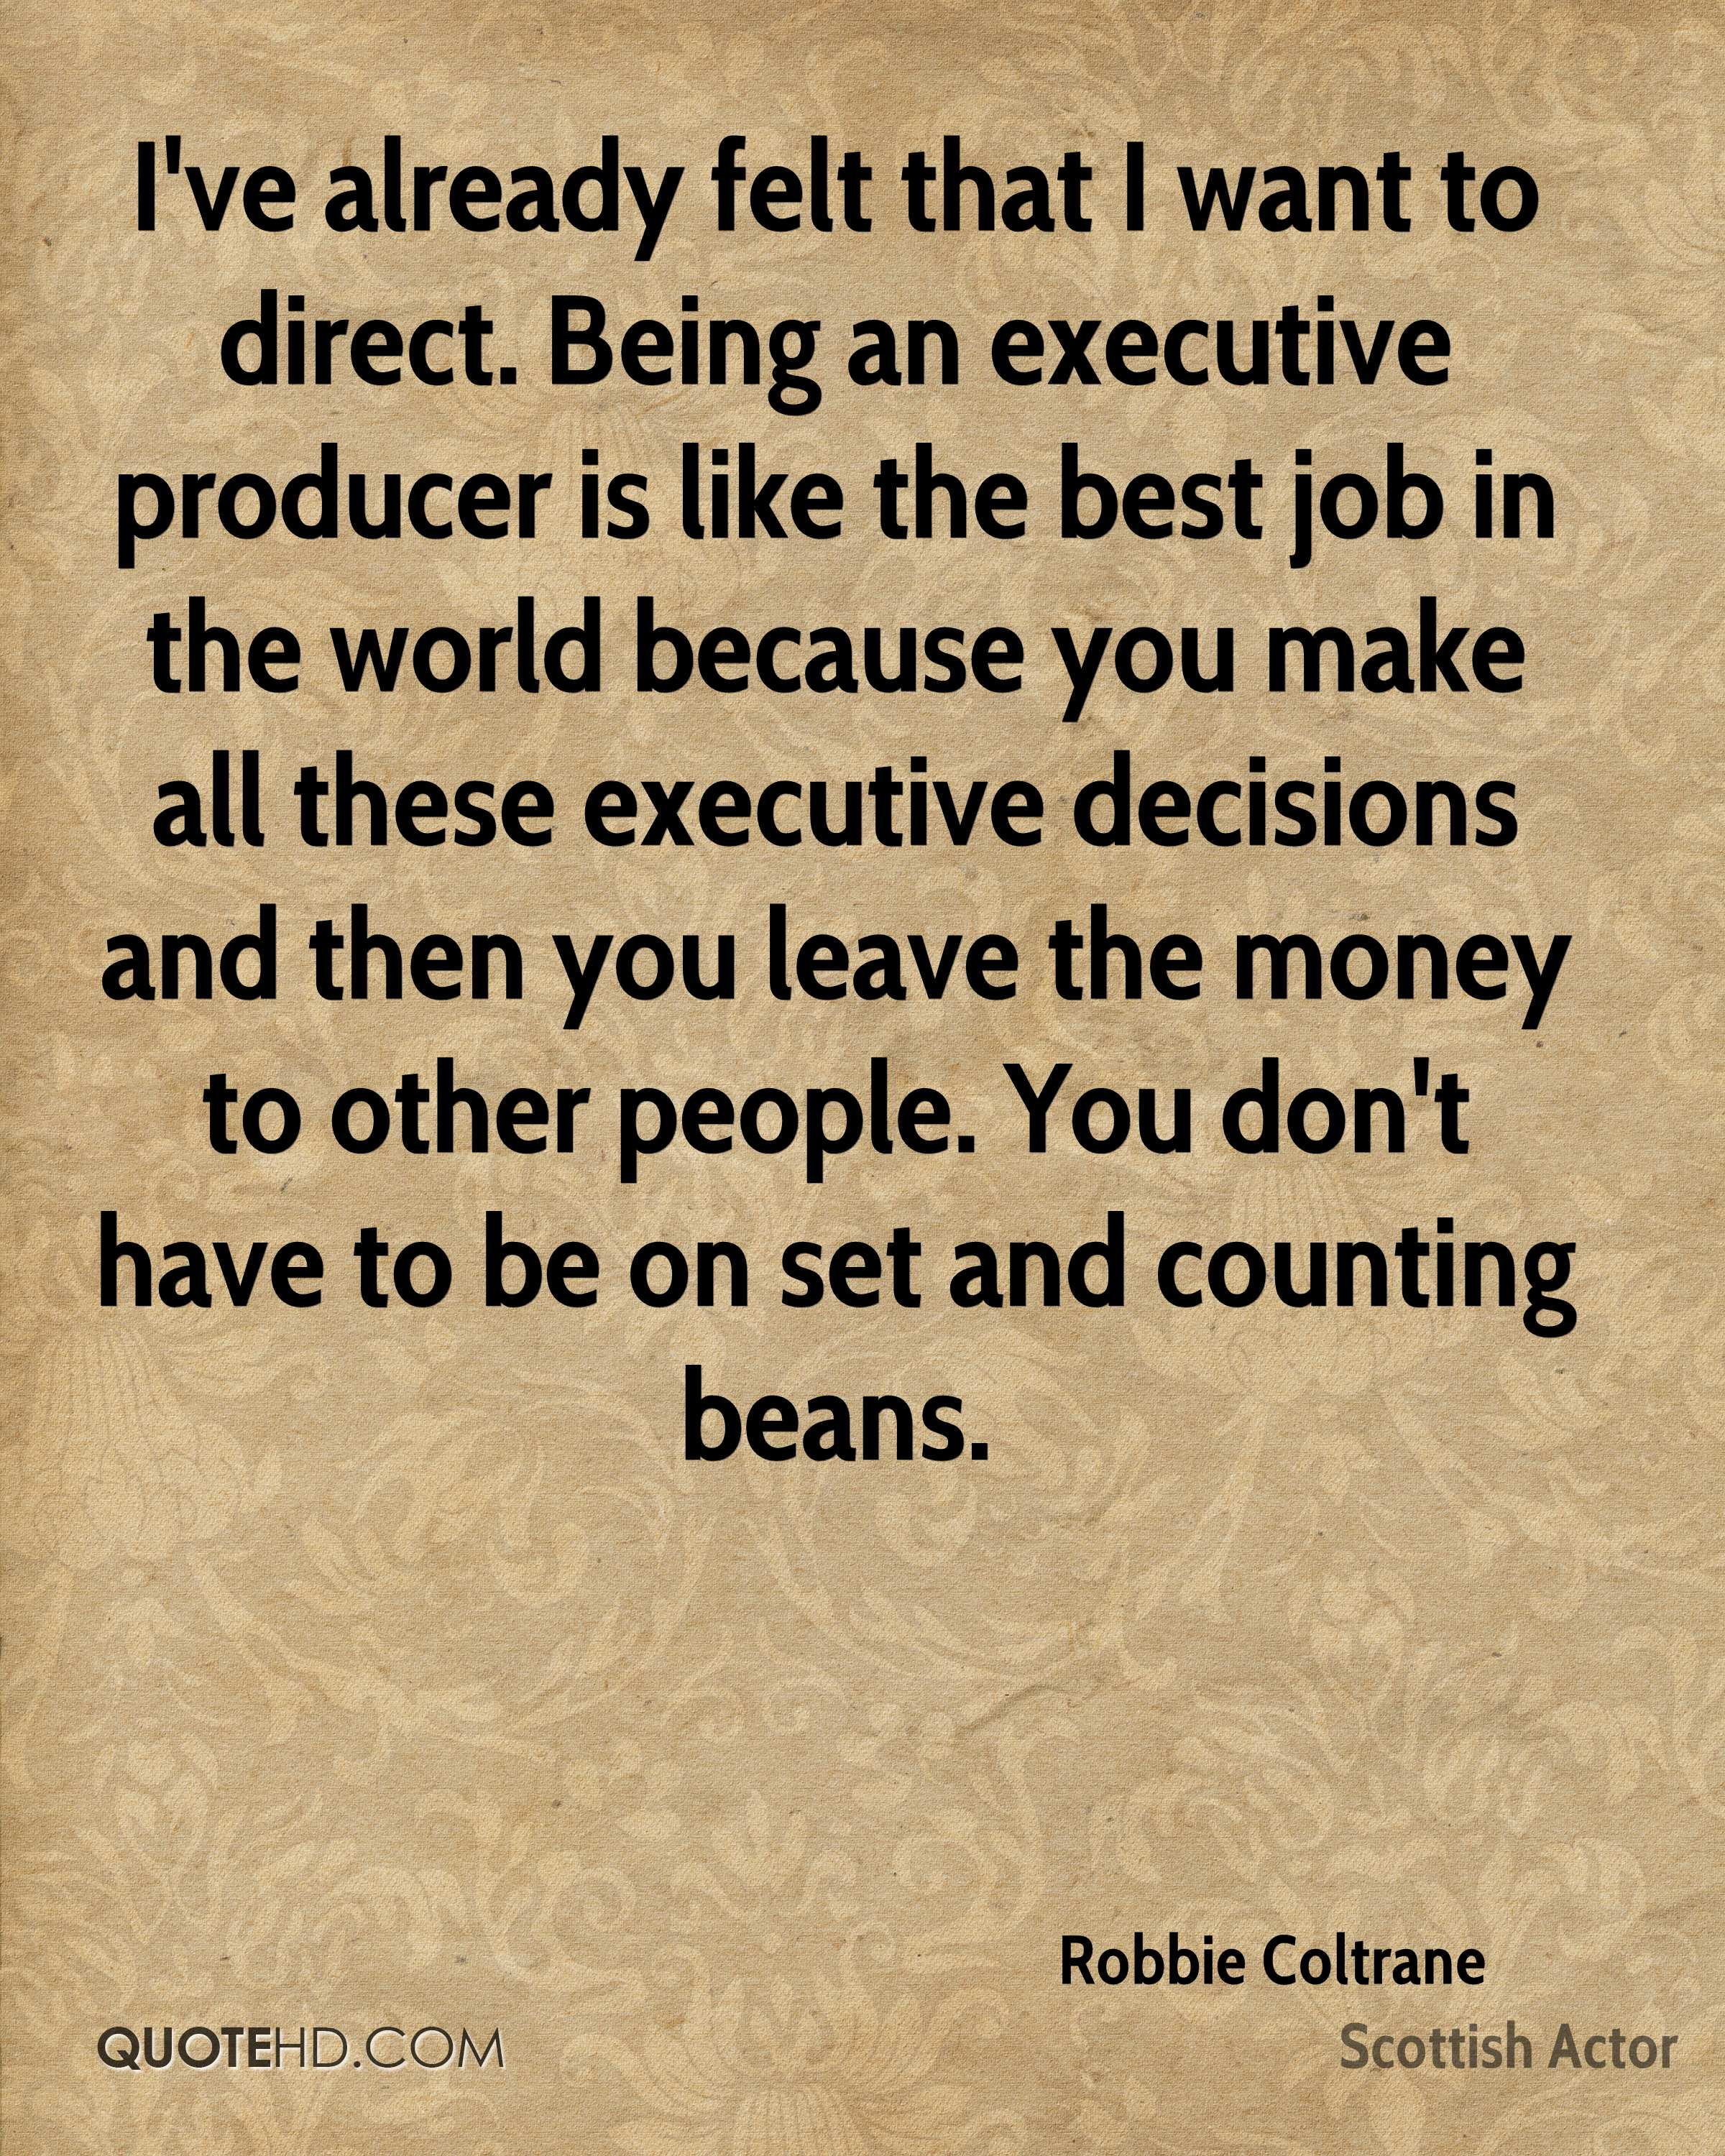 I've already felt that I want to direct. Being an executive producer is like the best job in the world because you make all these executive decisions and then you leave the money to other people. You don't have to be on set and counting beans.